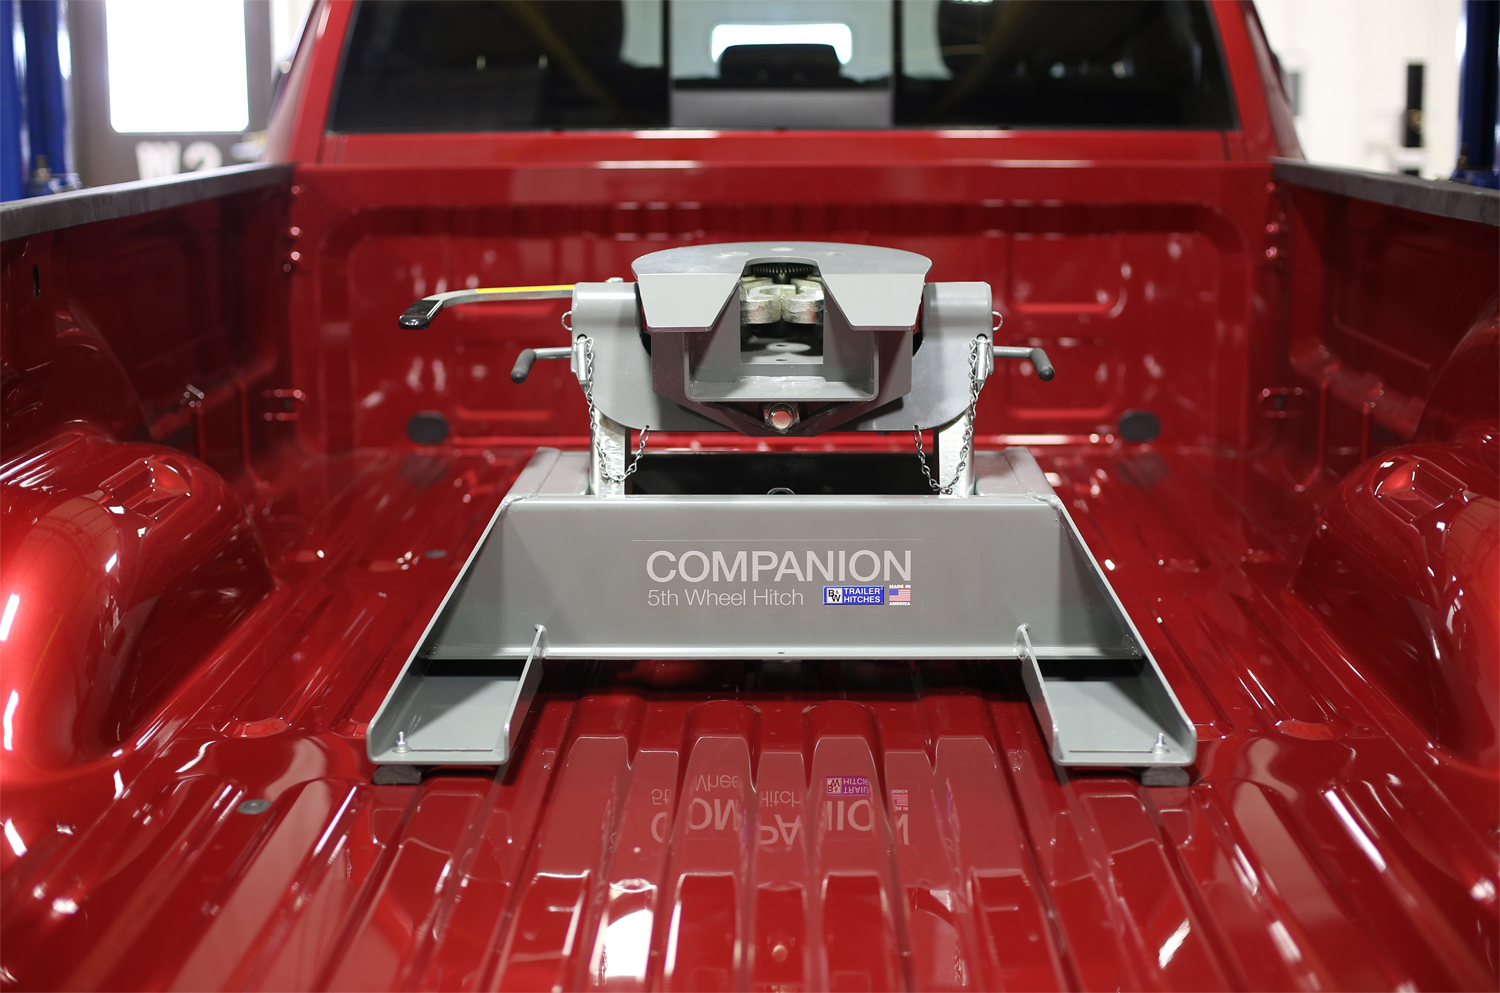 Truck Trailer Hitch >> B&W Trailer Hitches Boosts Load Capacity of Whisper-Quiet Companion Fifth Wheel Hitch to 20,000 ...